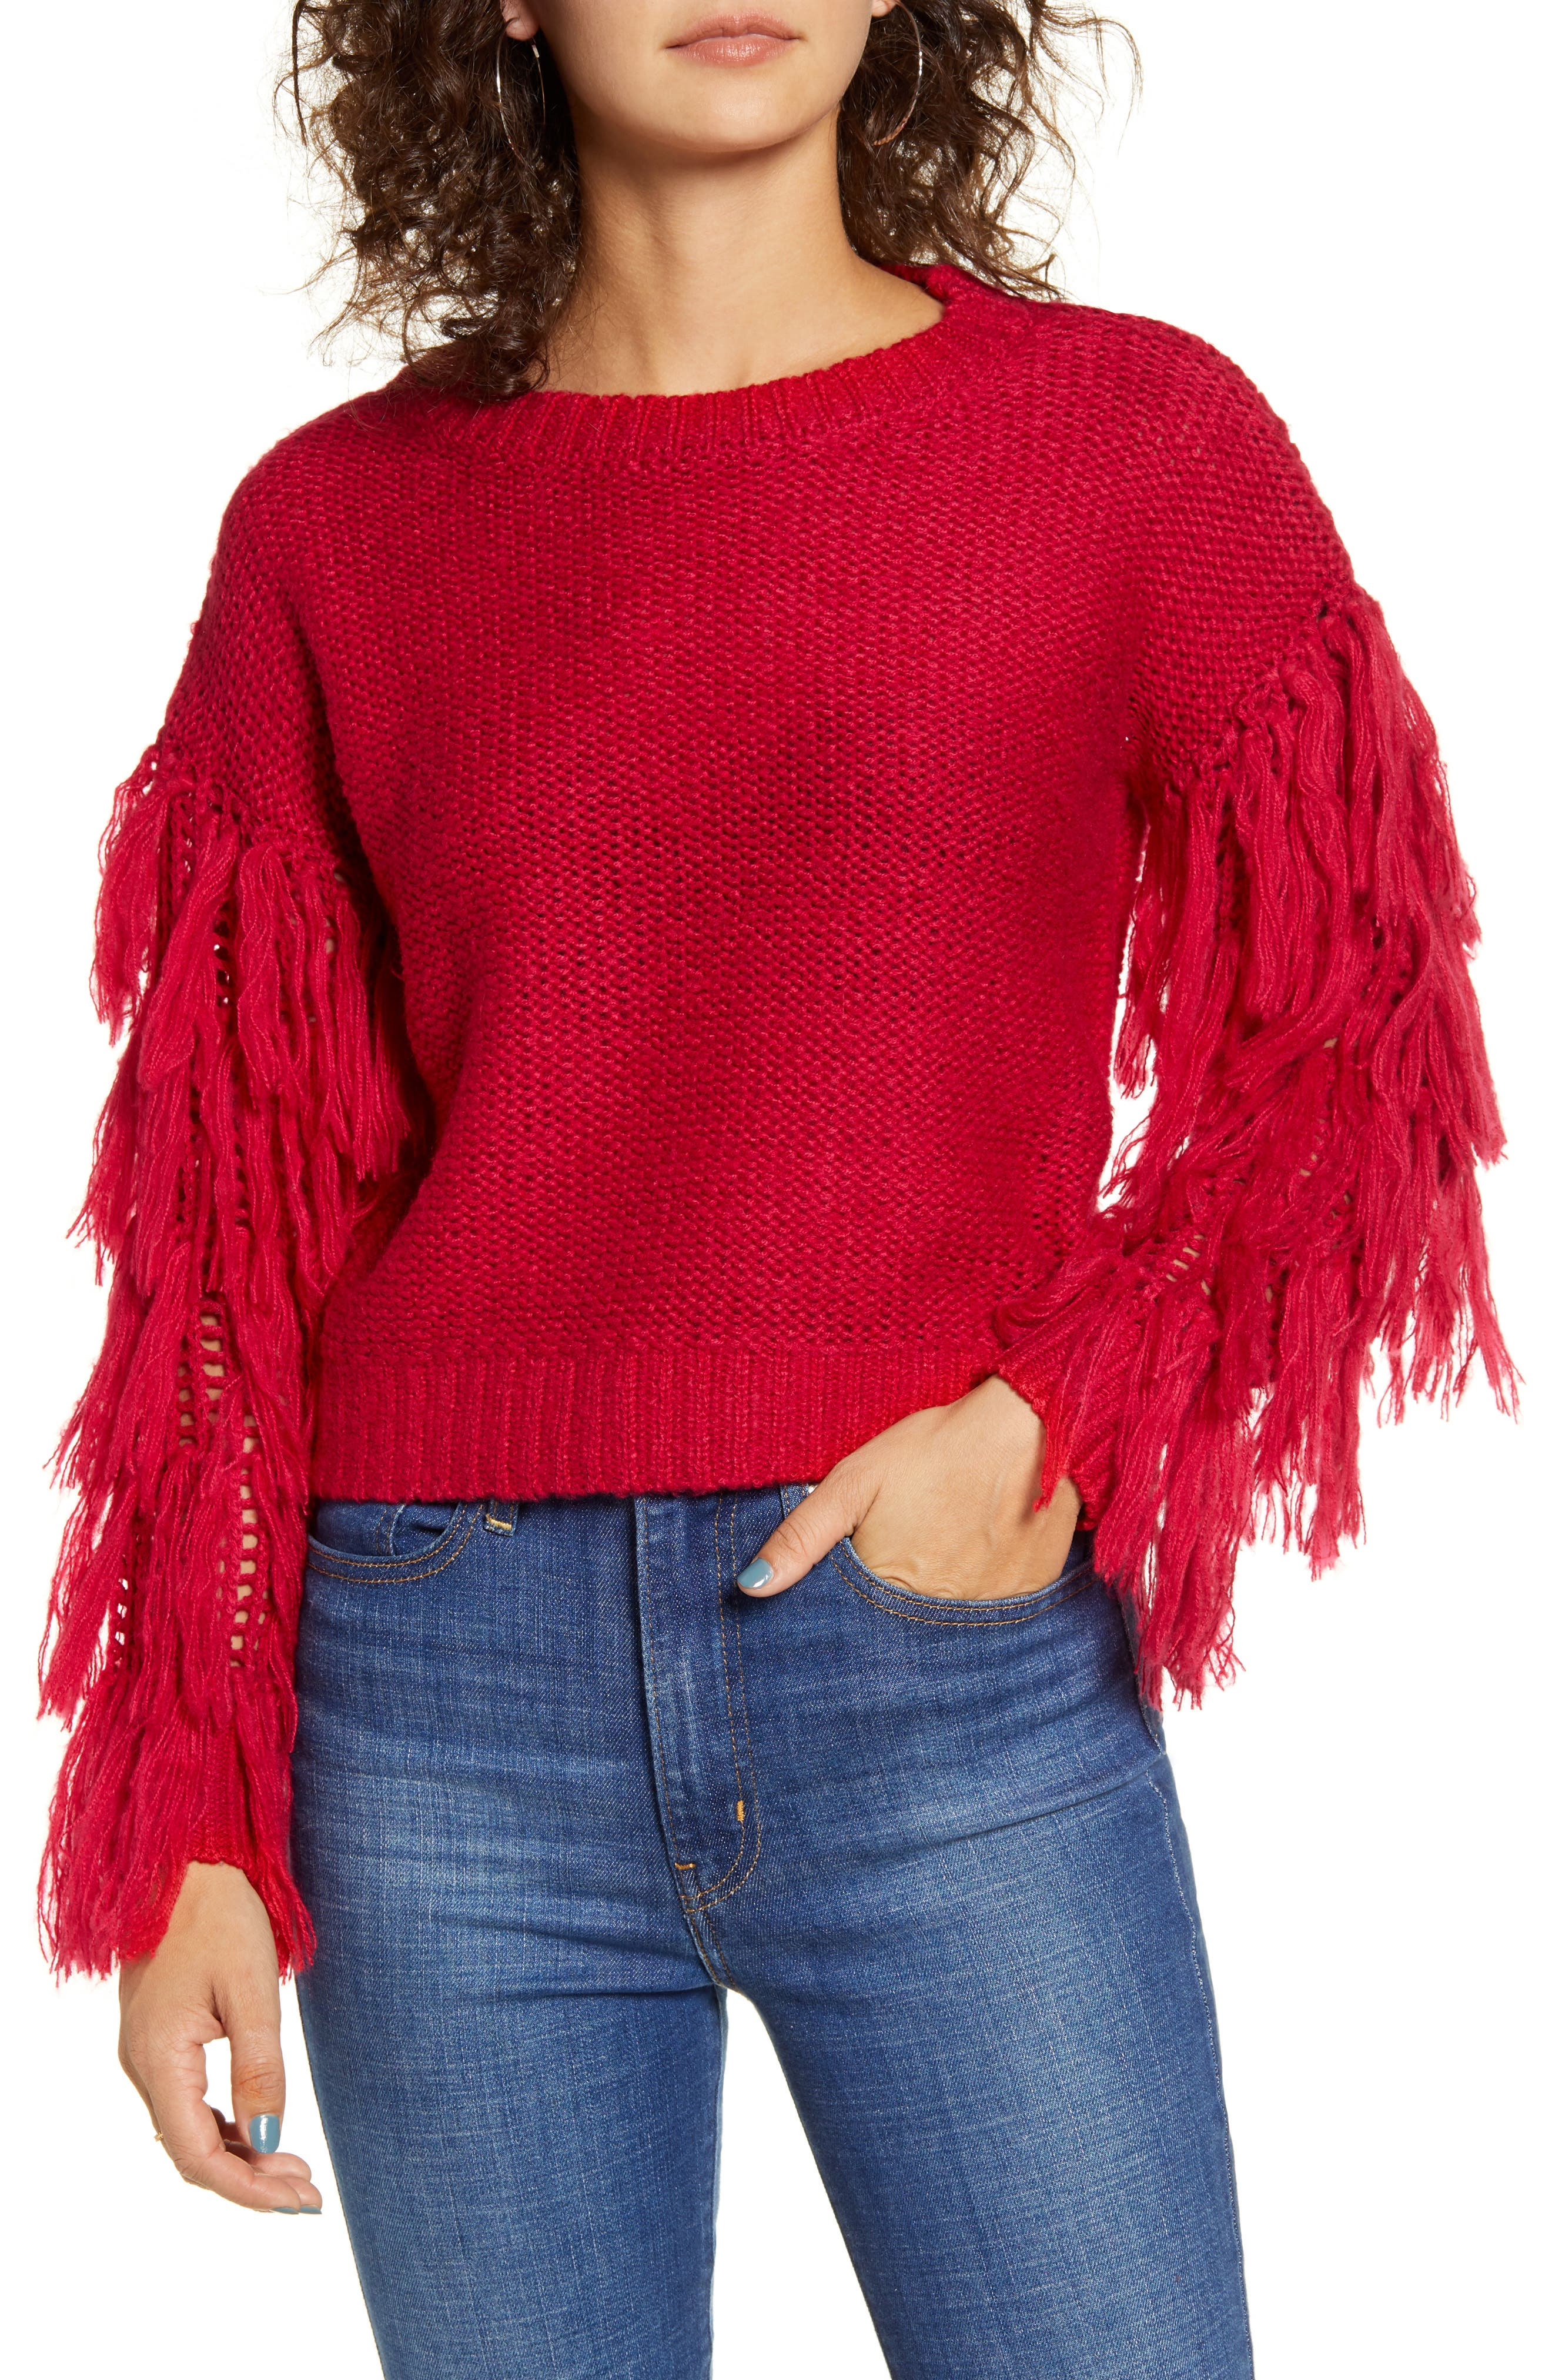 Fringe Sleeve Sweater by Love By Design